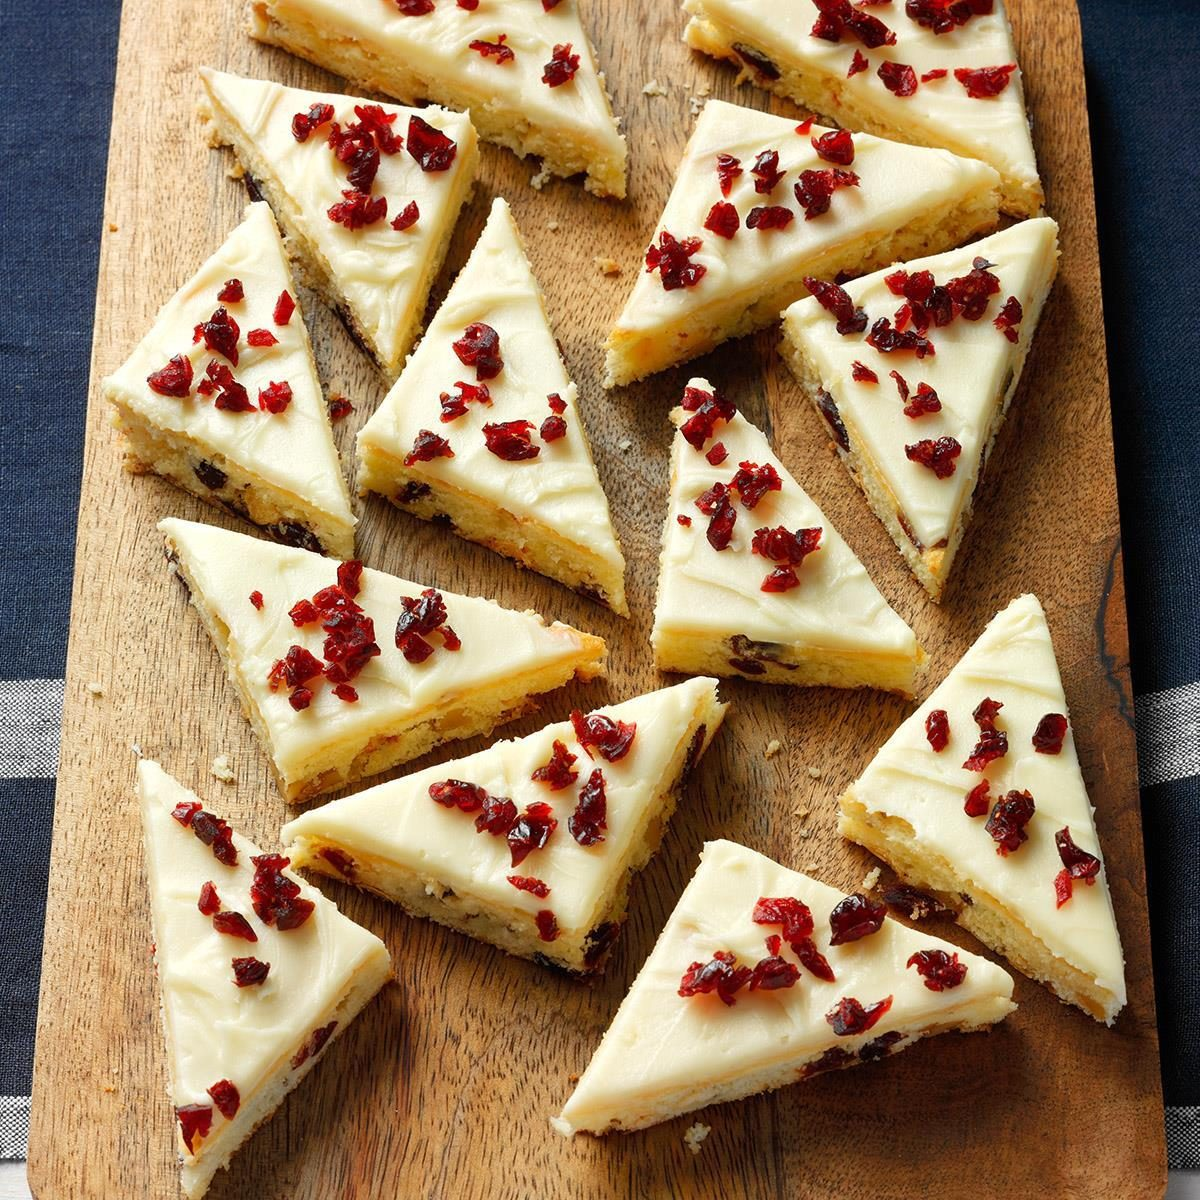 Cranberry Bars with Cream Cheese Frosting